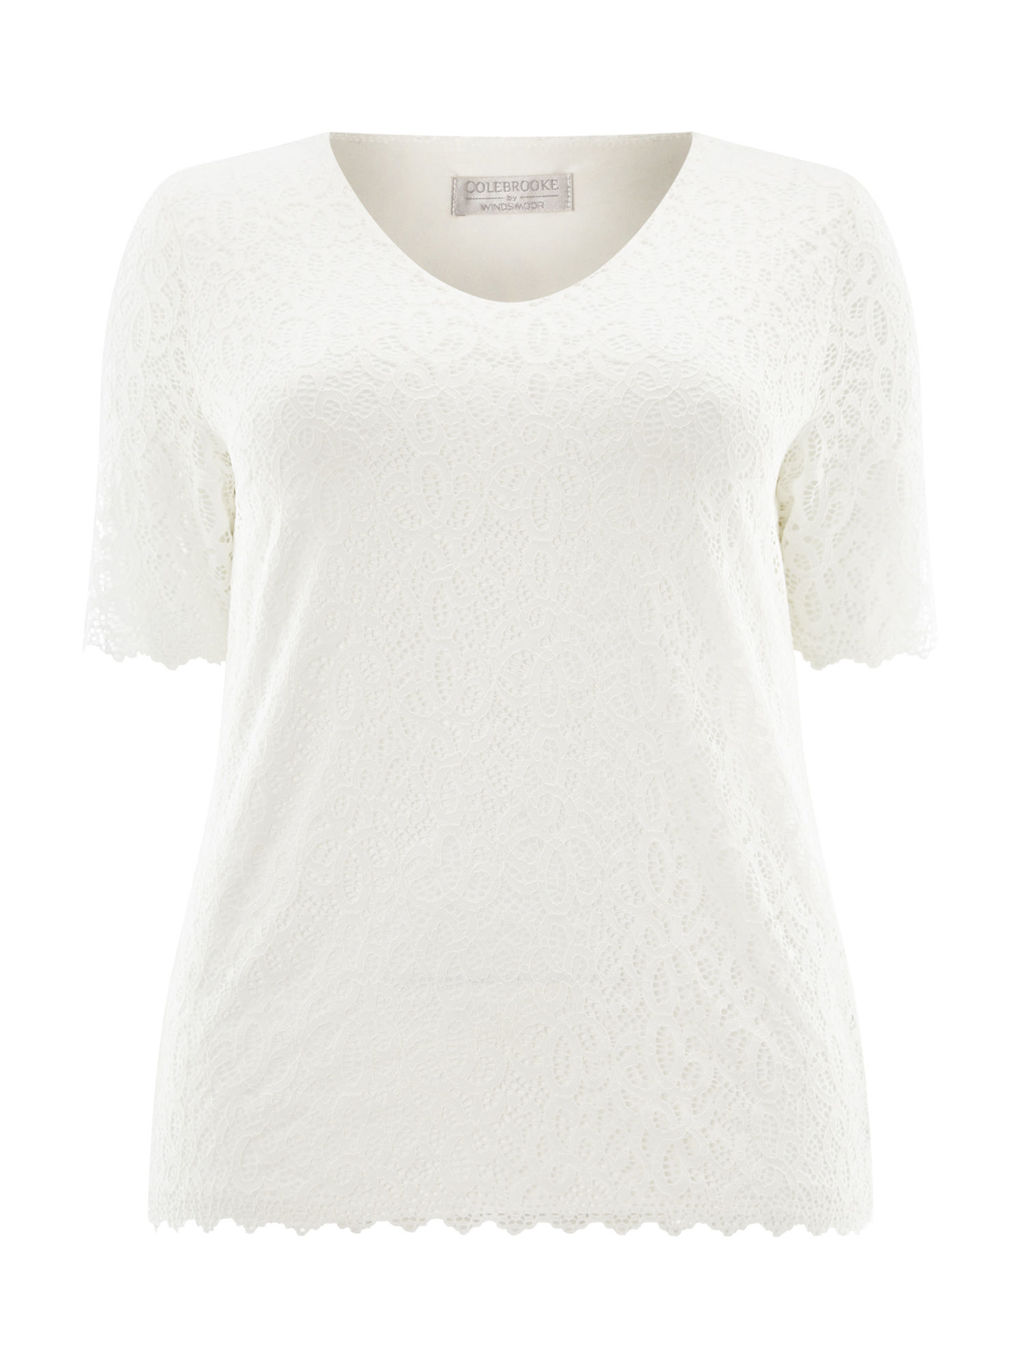 Ivory Lace Jersey Top - neckline: v-neck; predominant colour: ivory/cream; occasions: casual, creative work; length: standard; style: top; fibres: polyester/polyamide - stretch; fit: body skimming; sleeve length: short sleeve; sleeve style: standard; pattern type: fabric; pattern size: light/subtle; pattern: patterned/print; texture group: jersey - stretchy/drapey; season: a/w 2015; wardrobe: highlight